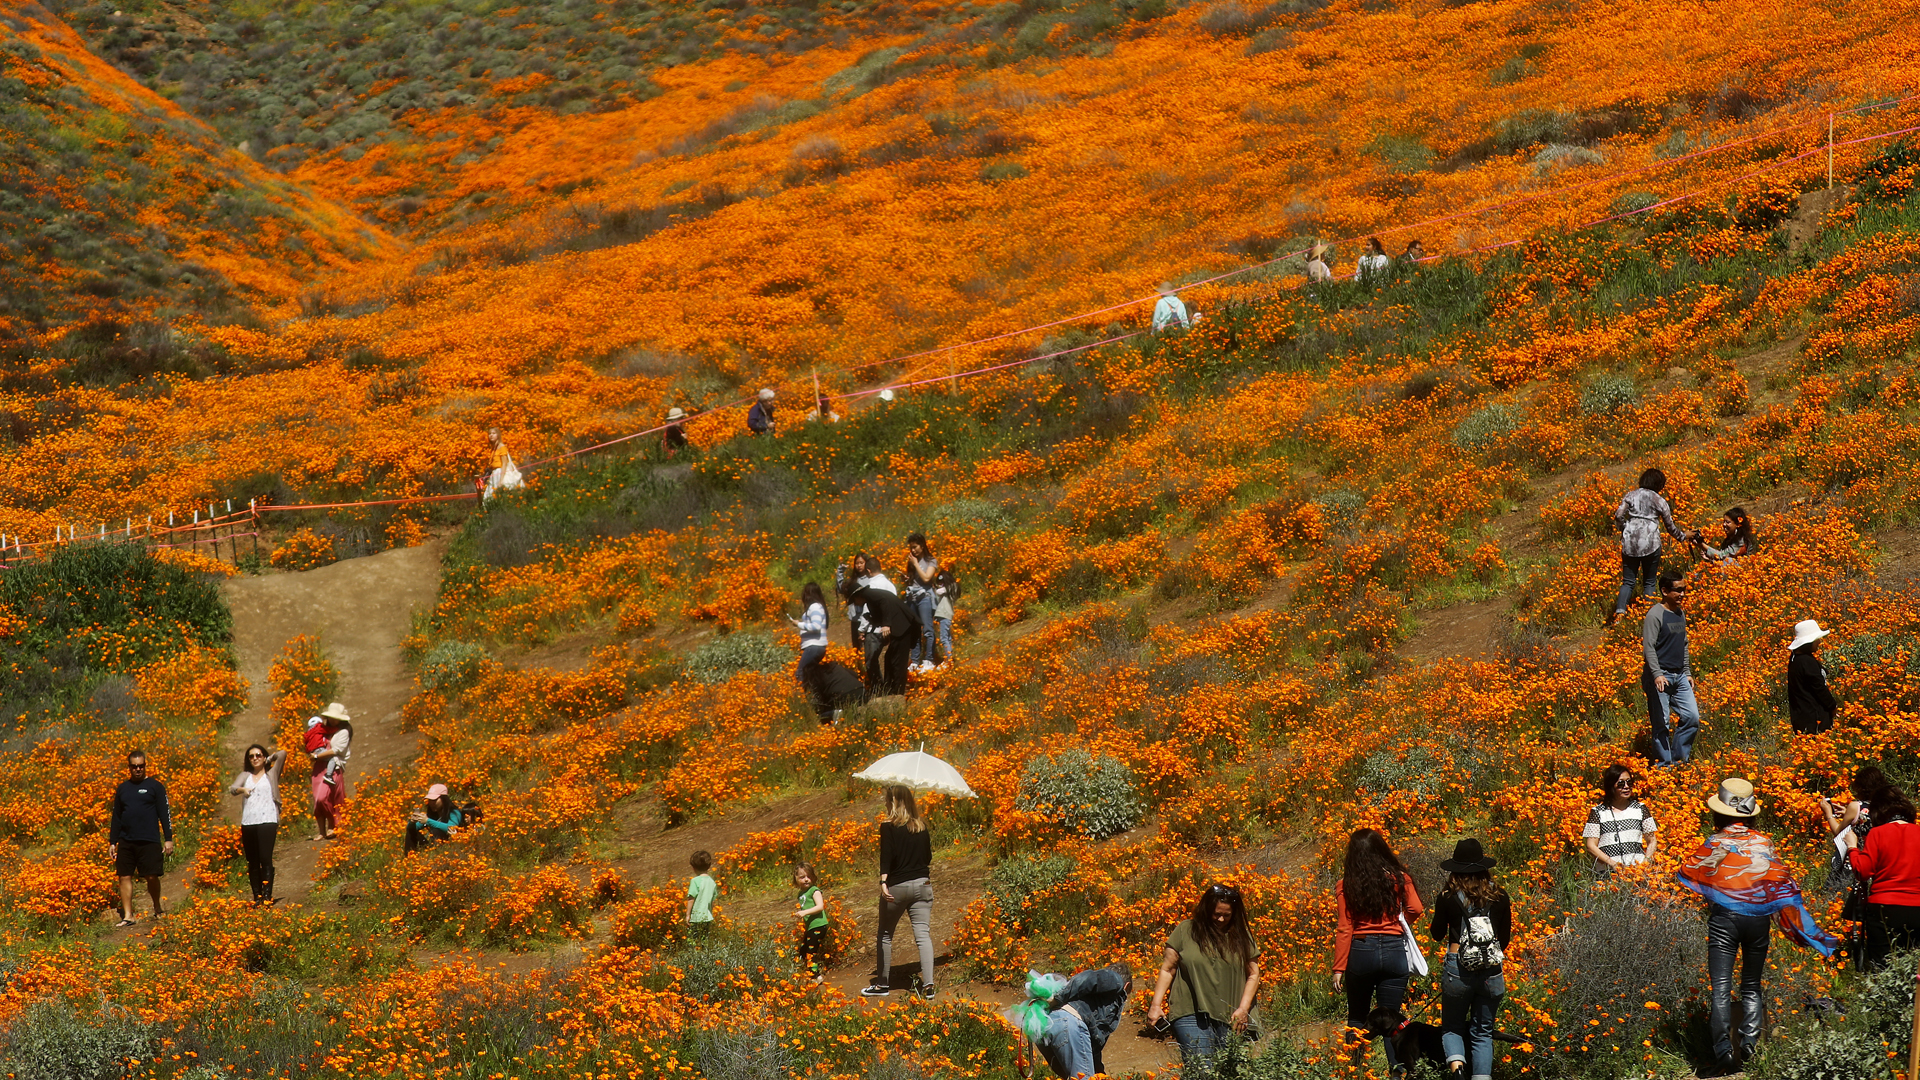 People visit a super bloom of poppies blanketing the hills of Walker Canyon on March 12, 2019 near Lake Elsinore. (Credit: Mario Tama/Getty Images)